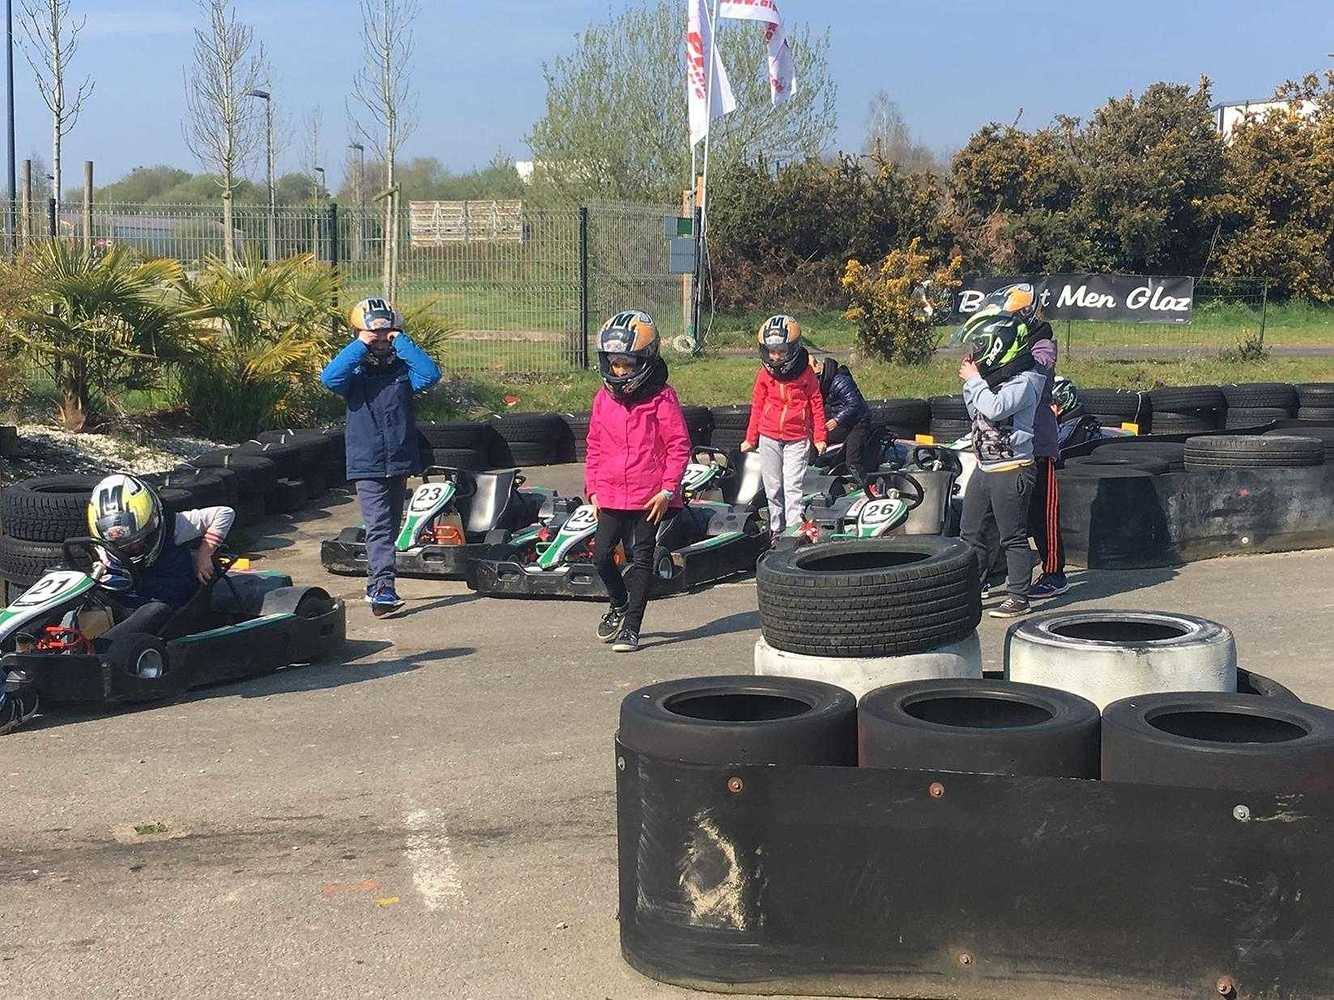 Cap Sports : photos de la sortie karting image11